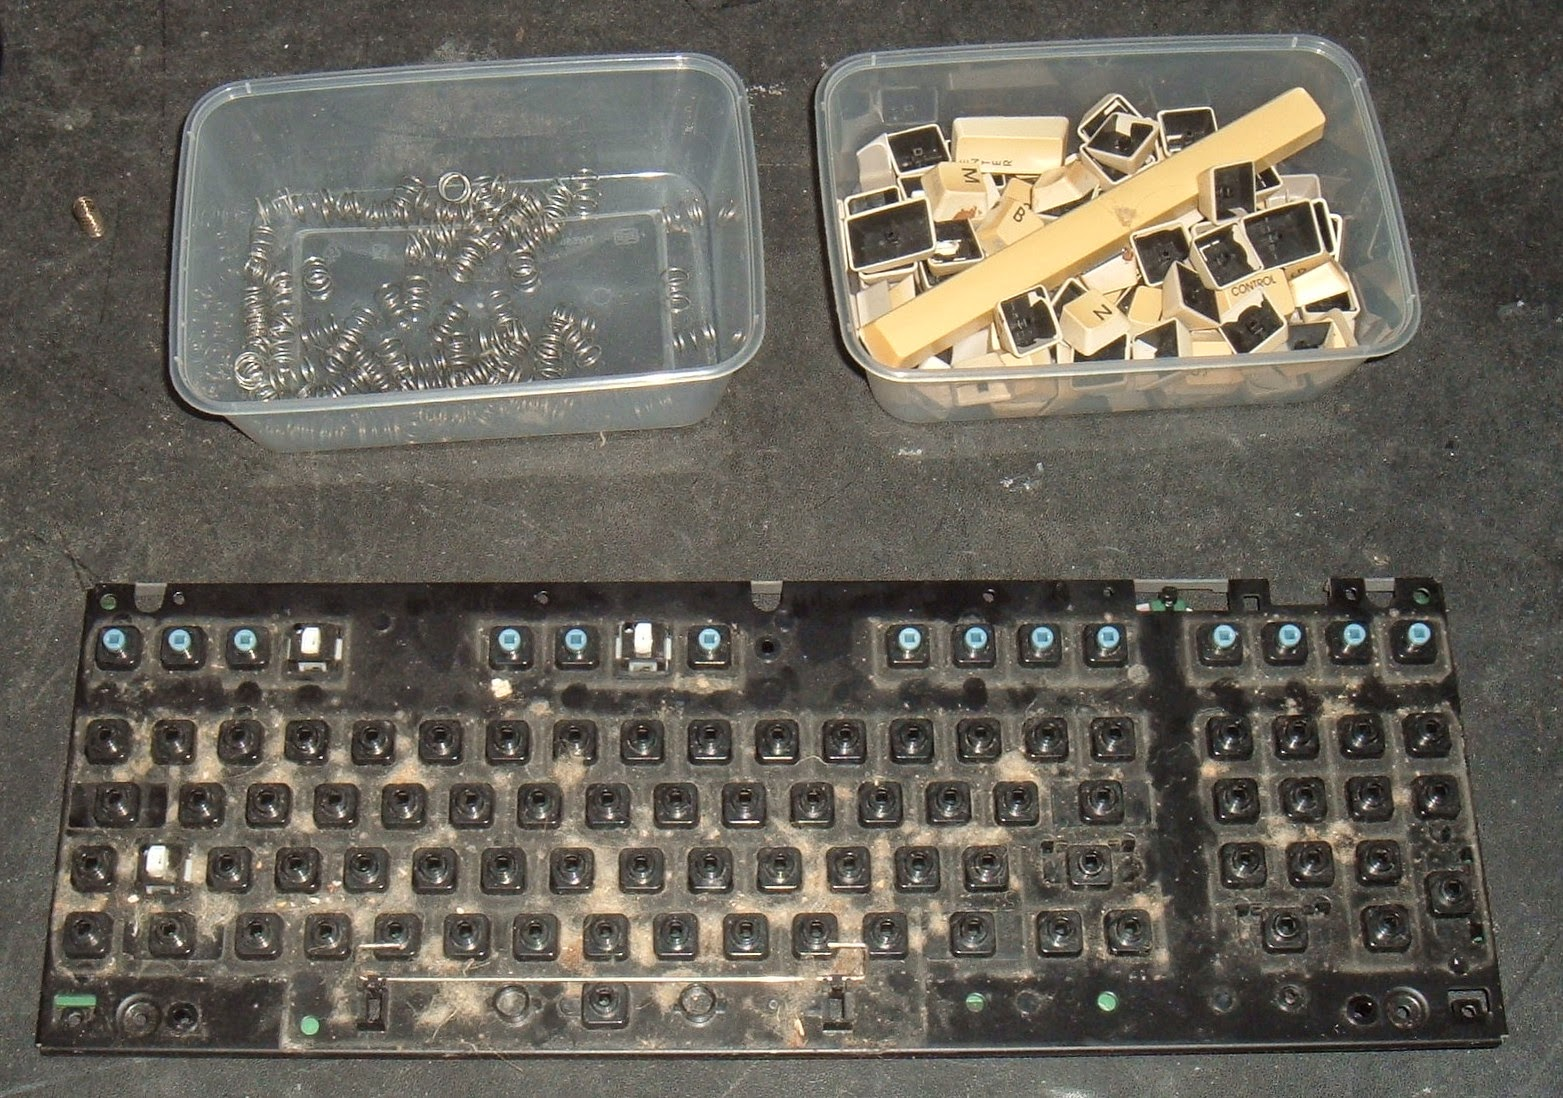 Tynemouth Software: Commodore 128 Repair - Part 2 Keyboard